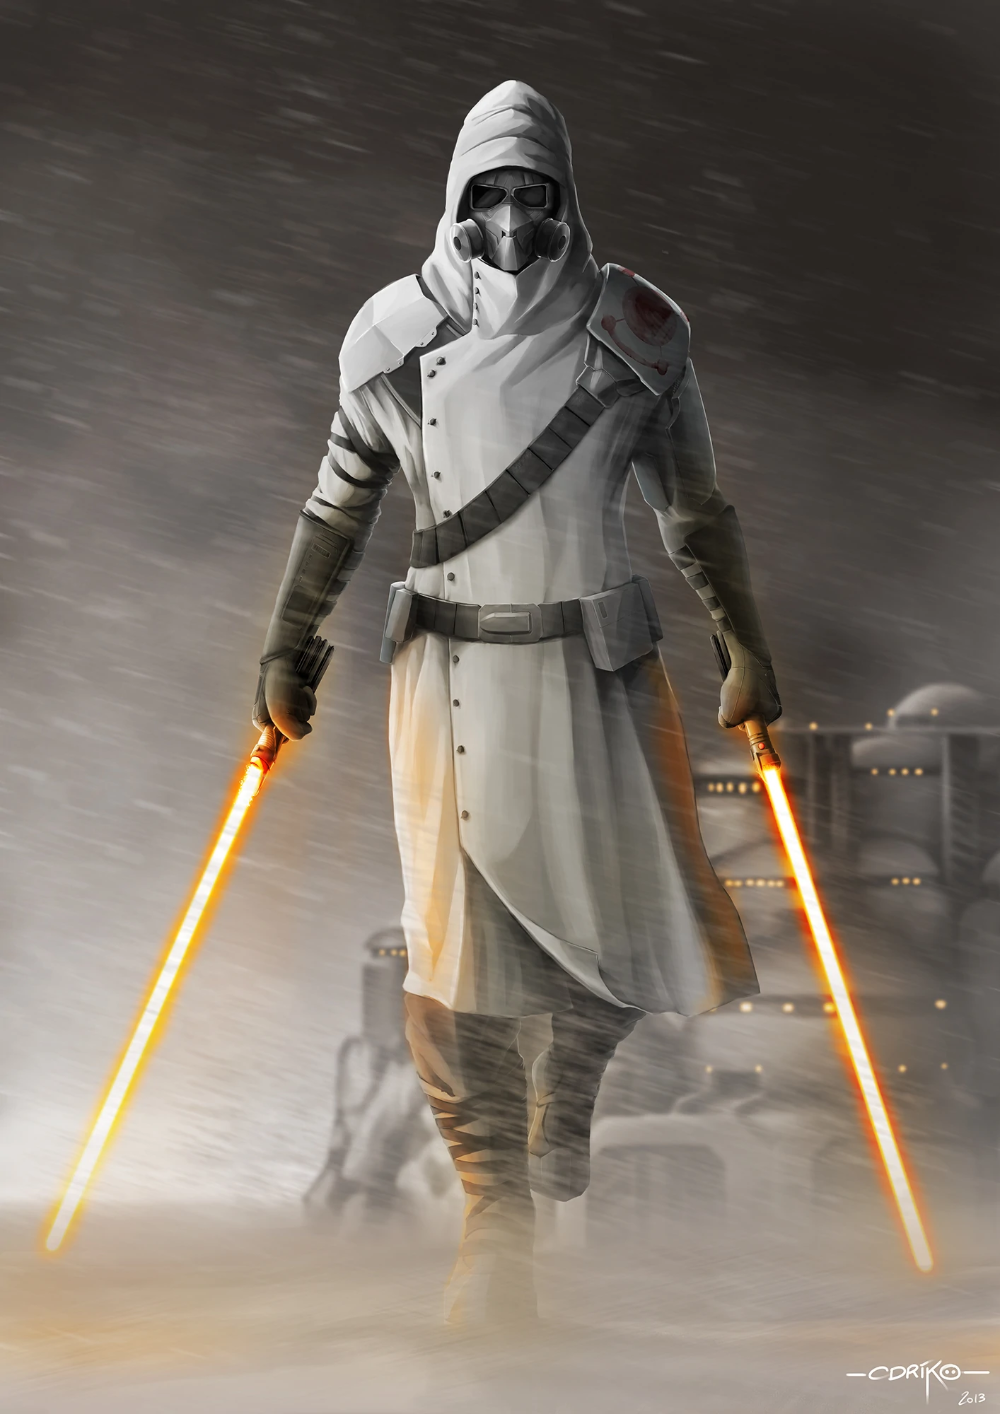 The Gray Jedi Code Was The Mantra That All Gray Jedi Lived By Similar To The Jedi Code Or The Sith Code Star Wars The Old Star Wars Concept Art Star